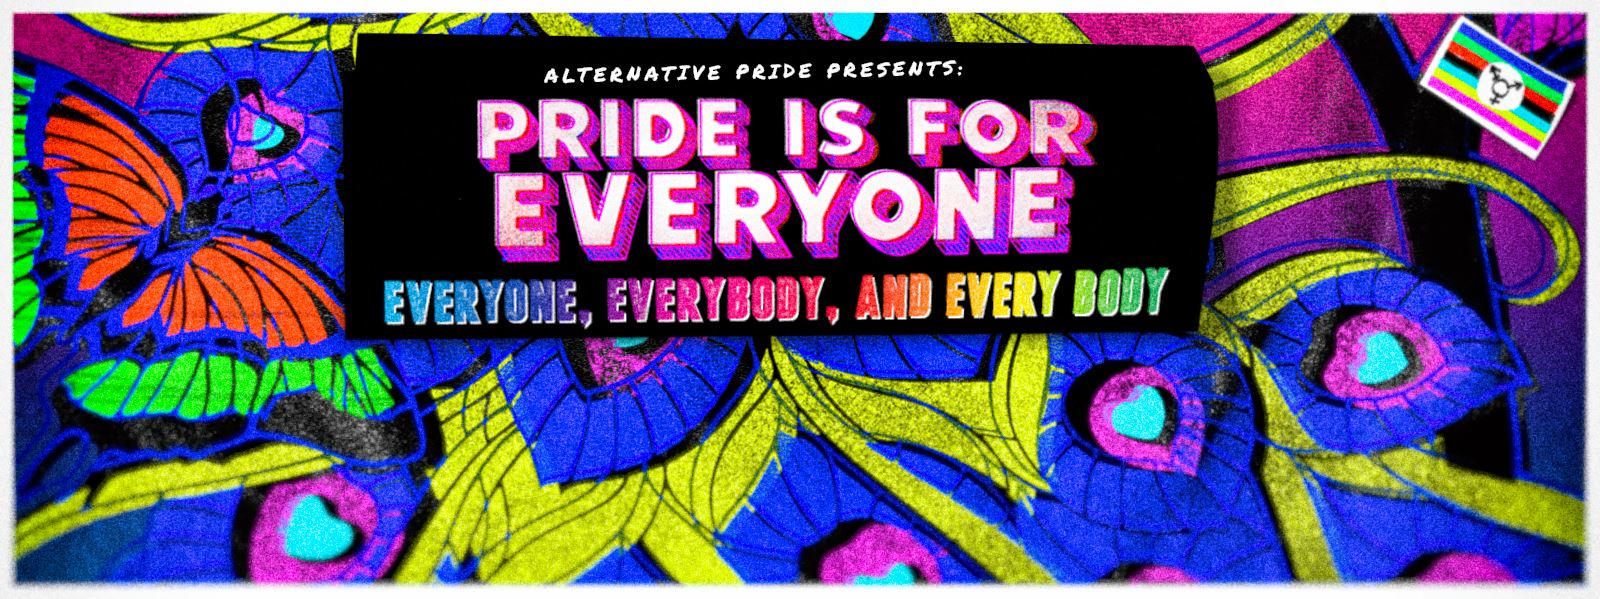 PRIDE IS FOR EVERYONE AT VANCOUVER ART & LEISURE